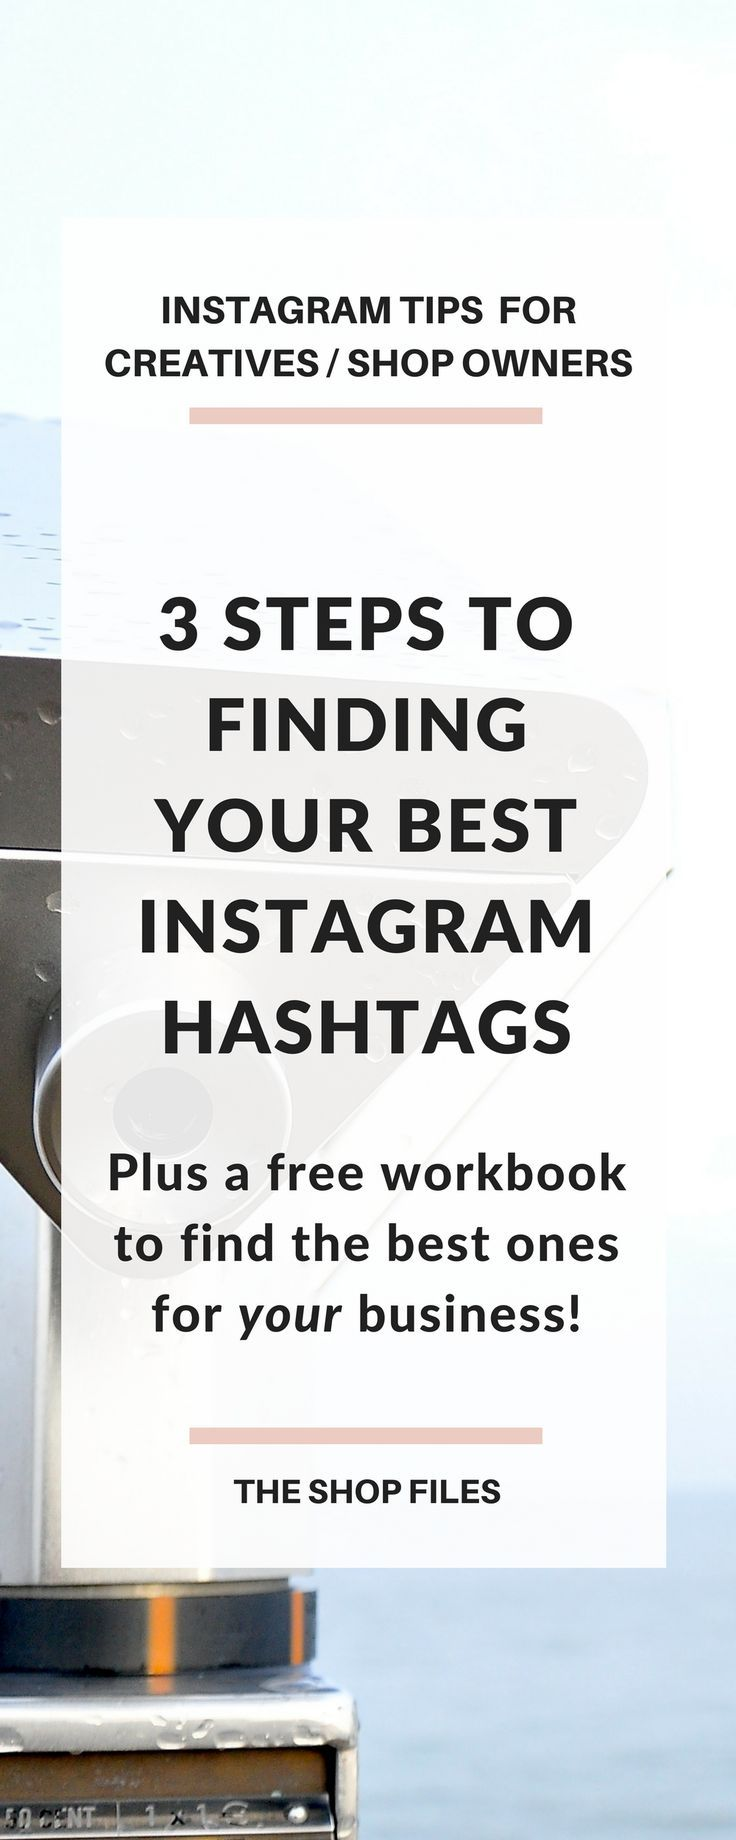 Tips on how to find the best Instagram hashtags for creatives, etsy sellers and online shop owners. Follow this three part guide to determine the best Instagram hashtags to use for your business | Instagram business tips and social media strategy